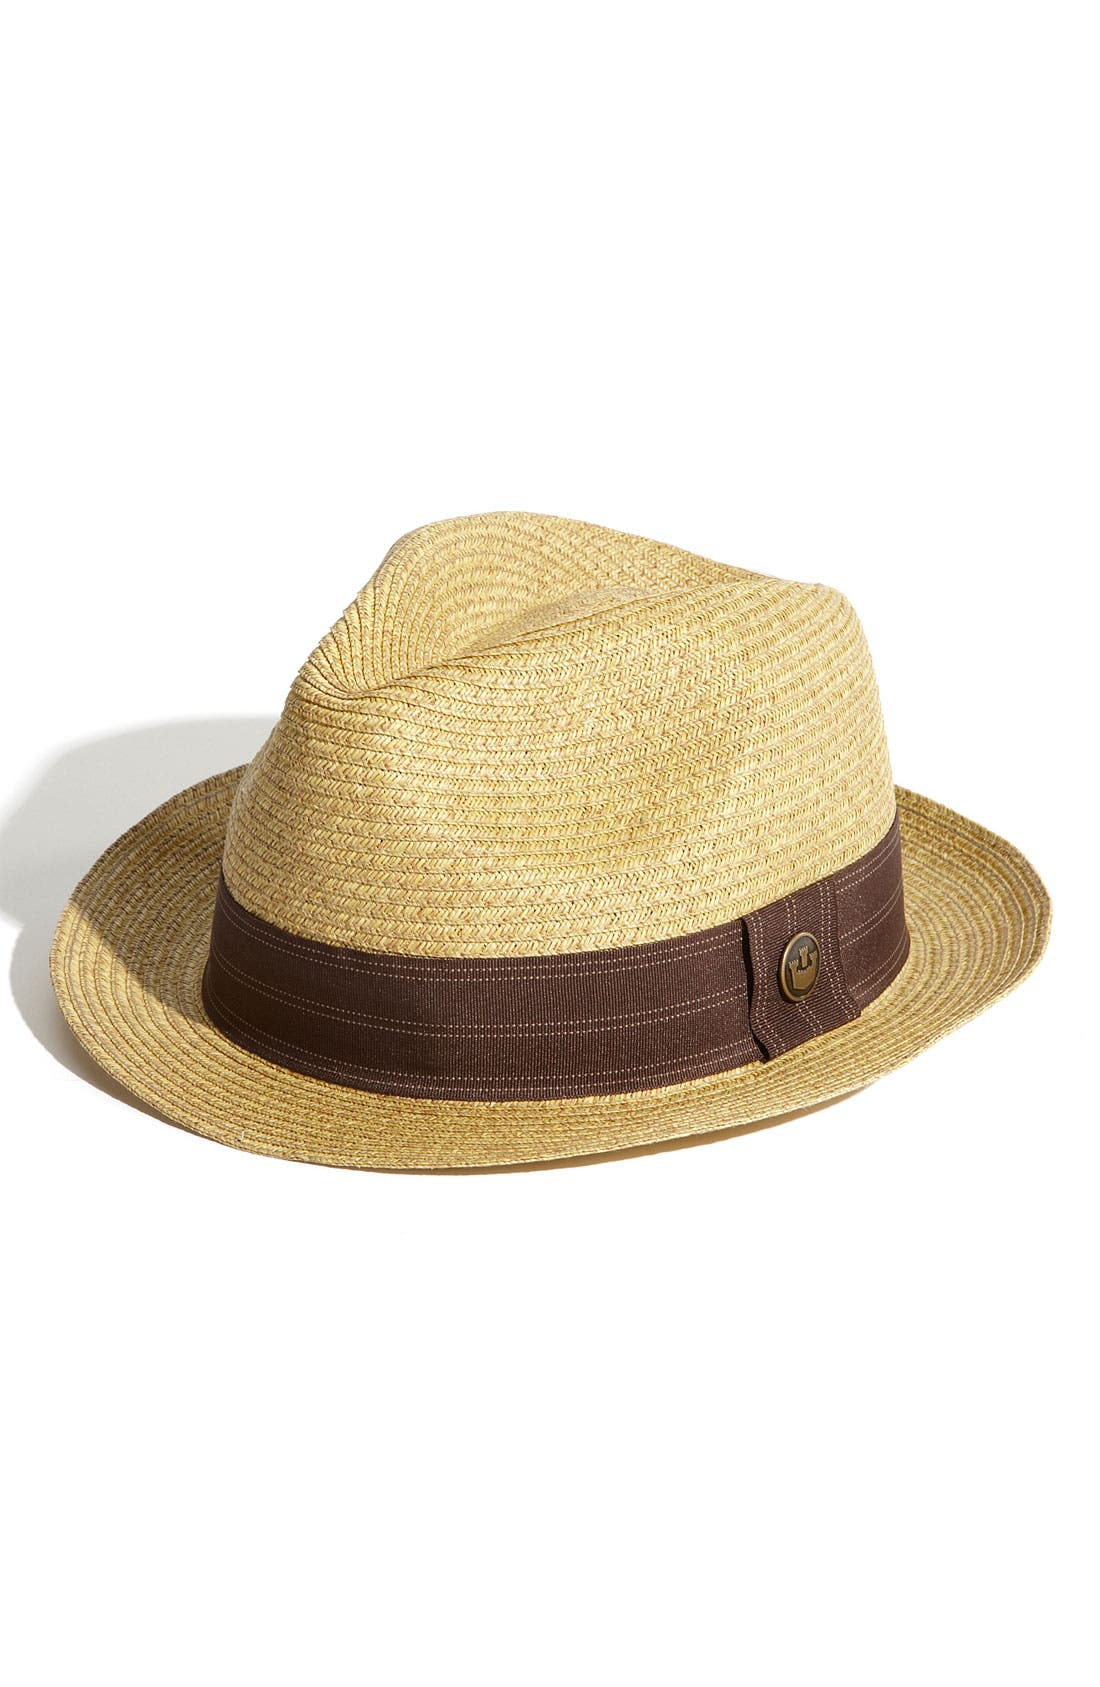 Alternate Image 1 Selected - Goorin Brothers 'Fields' Fedora